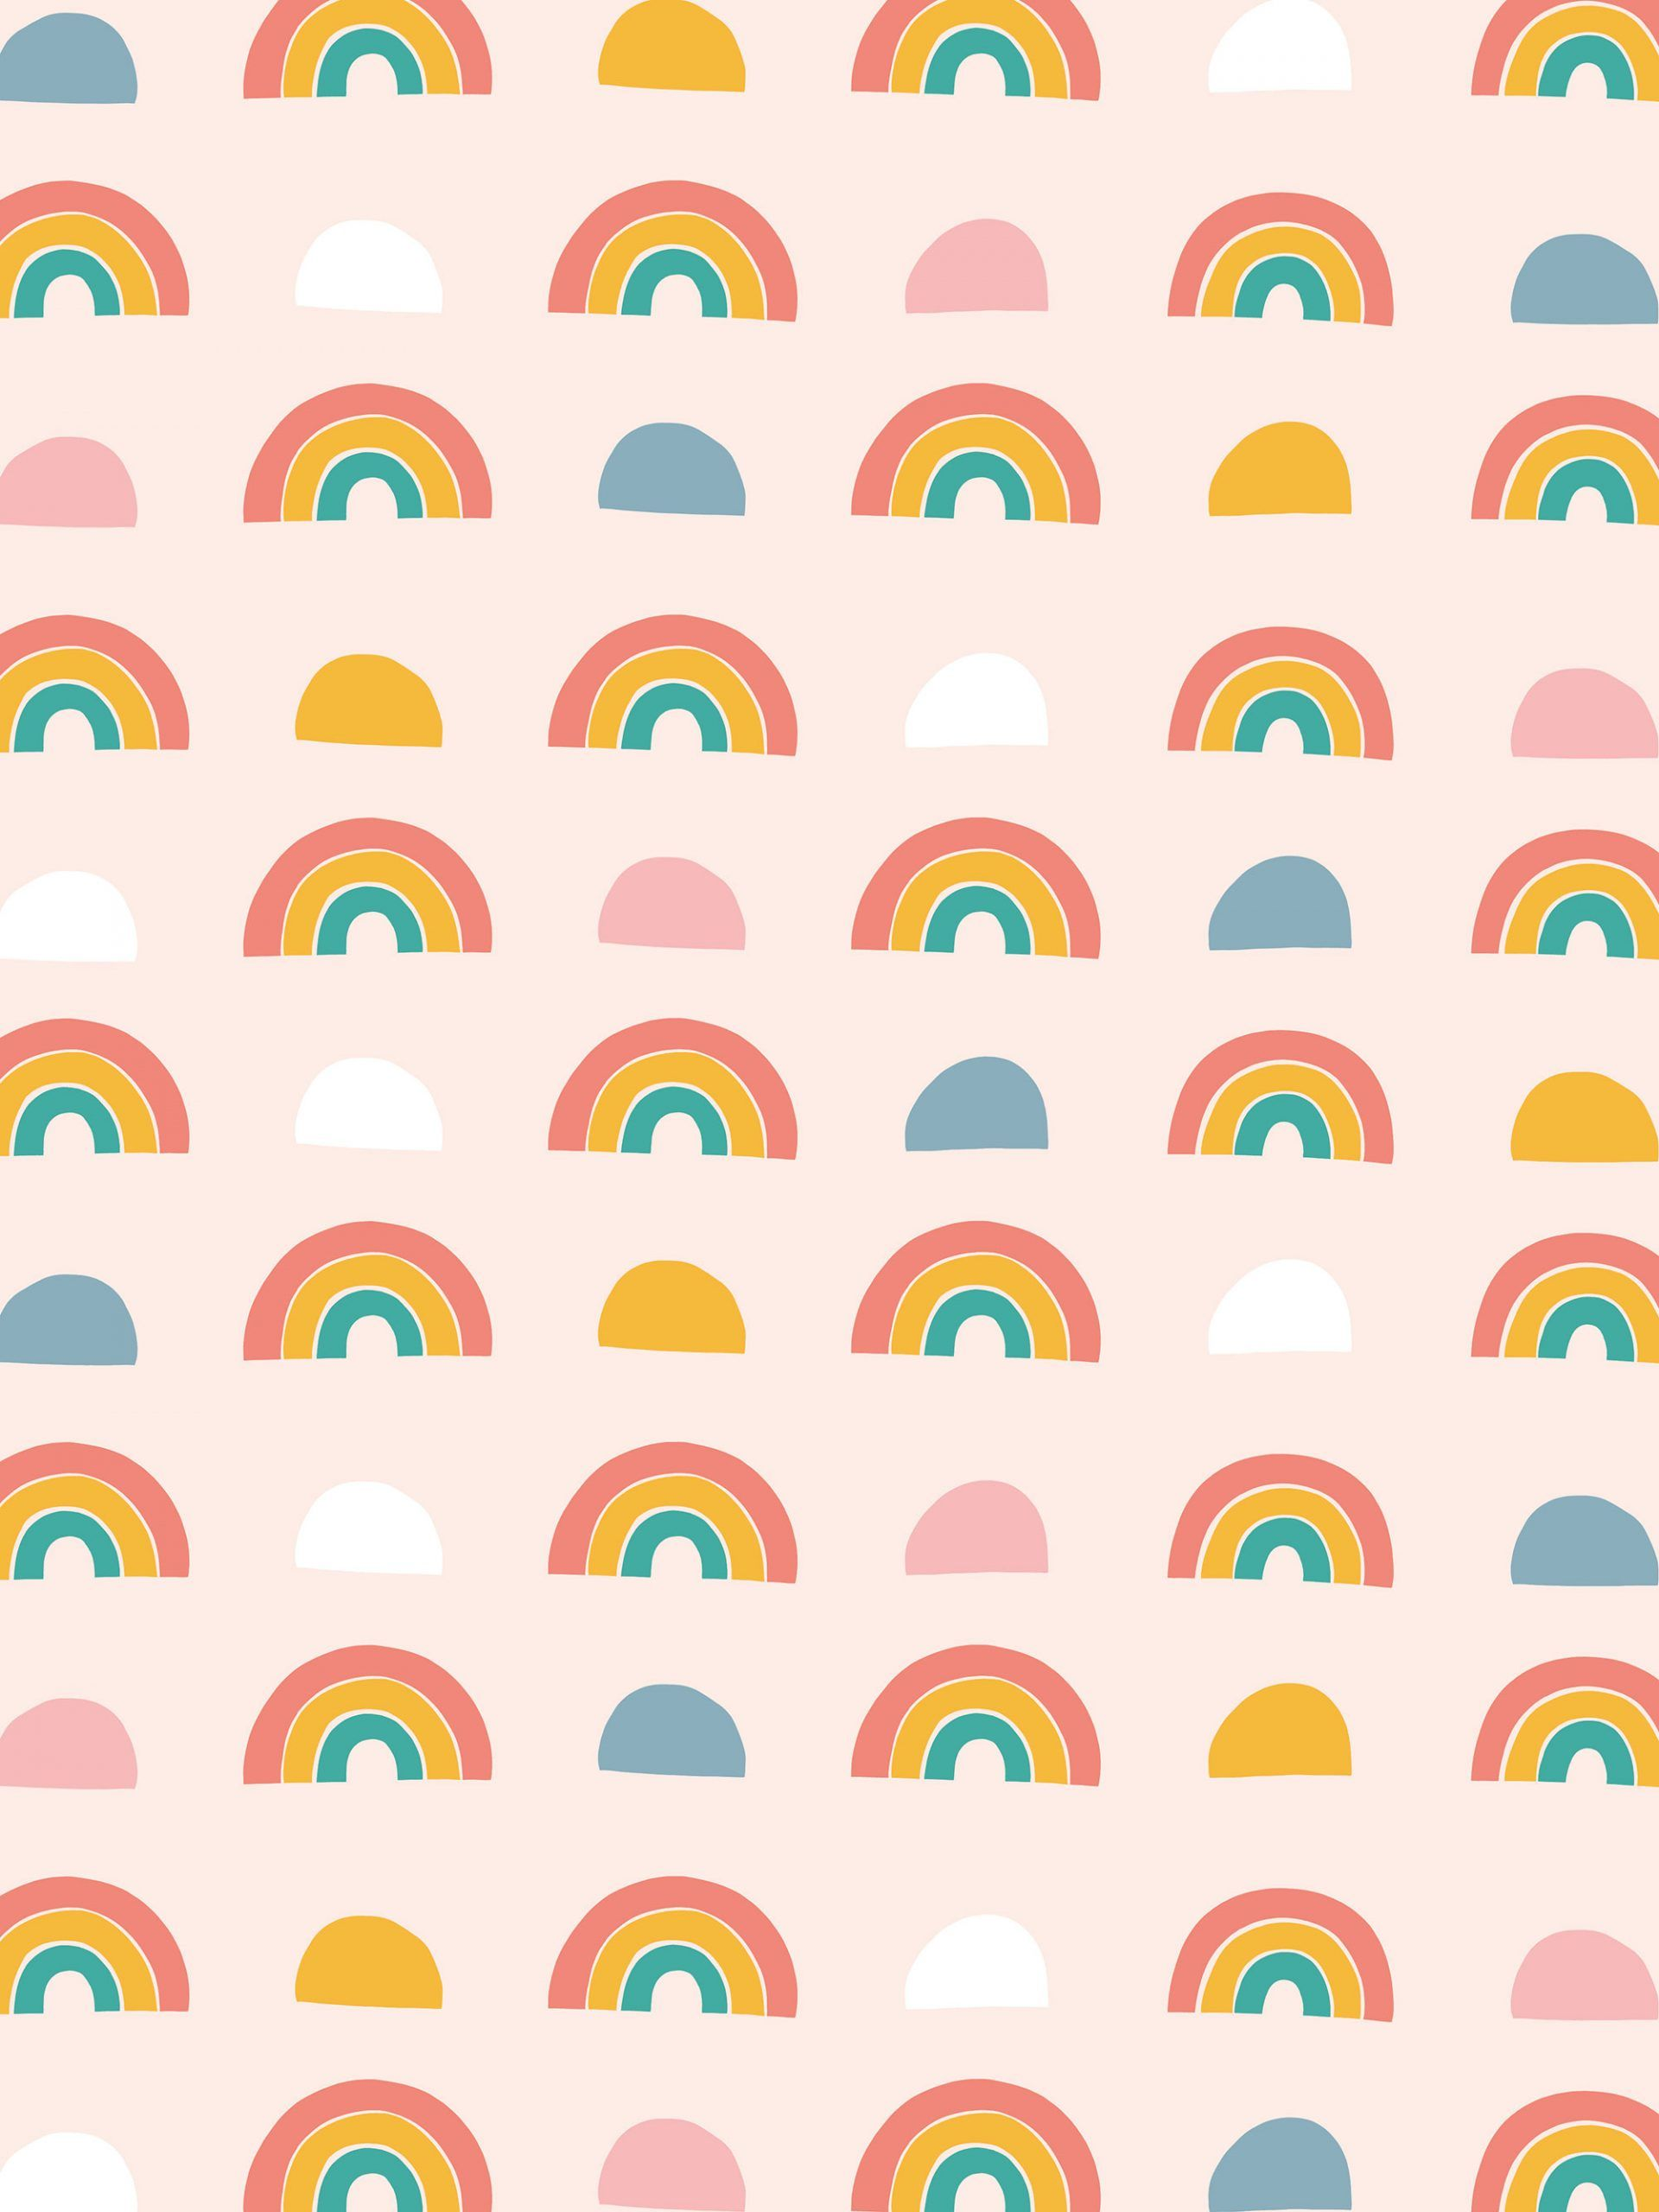 Rainbow Patterned Desktop Tablet And Phone Wallpaper In 2020 Rainbow Pattern Wallpaper Phone Wallpaper